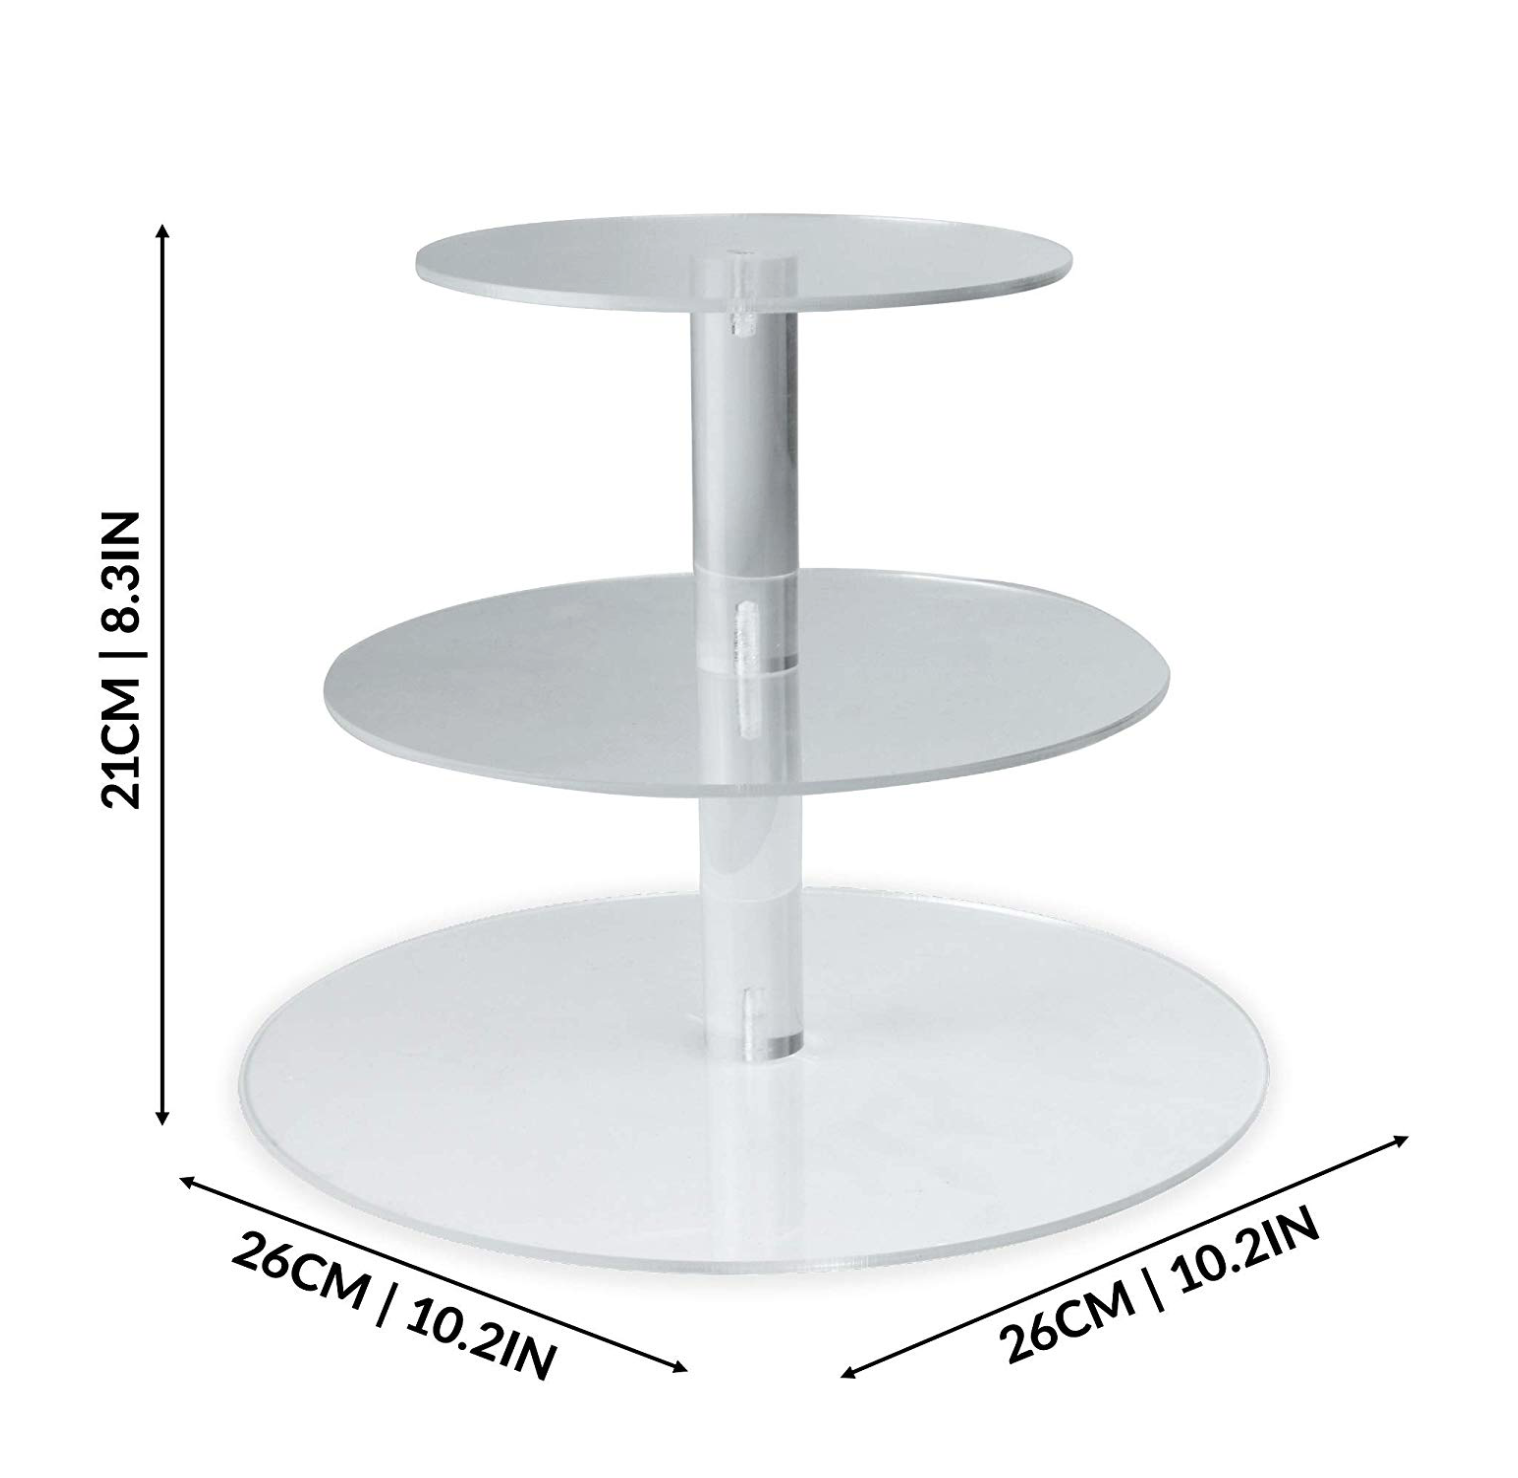 Tiered Acrylic Cake Stand